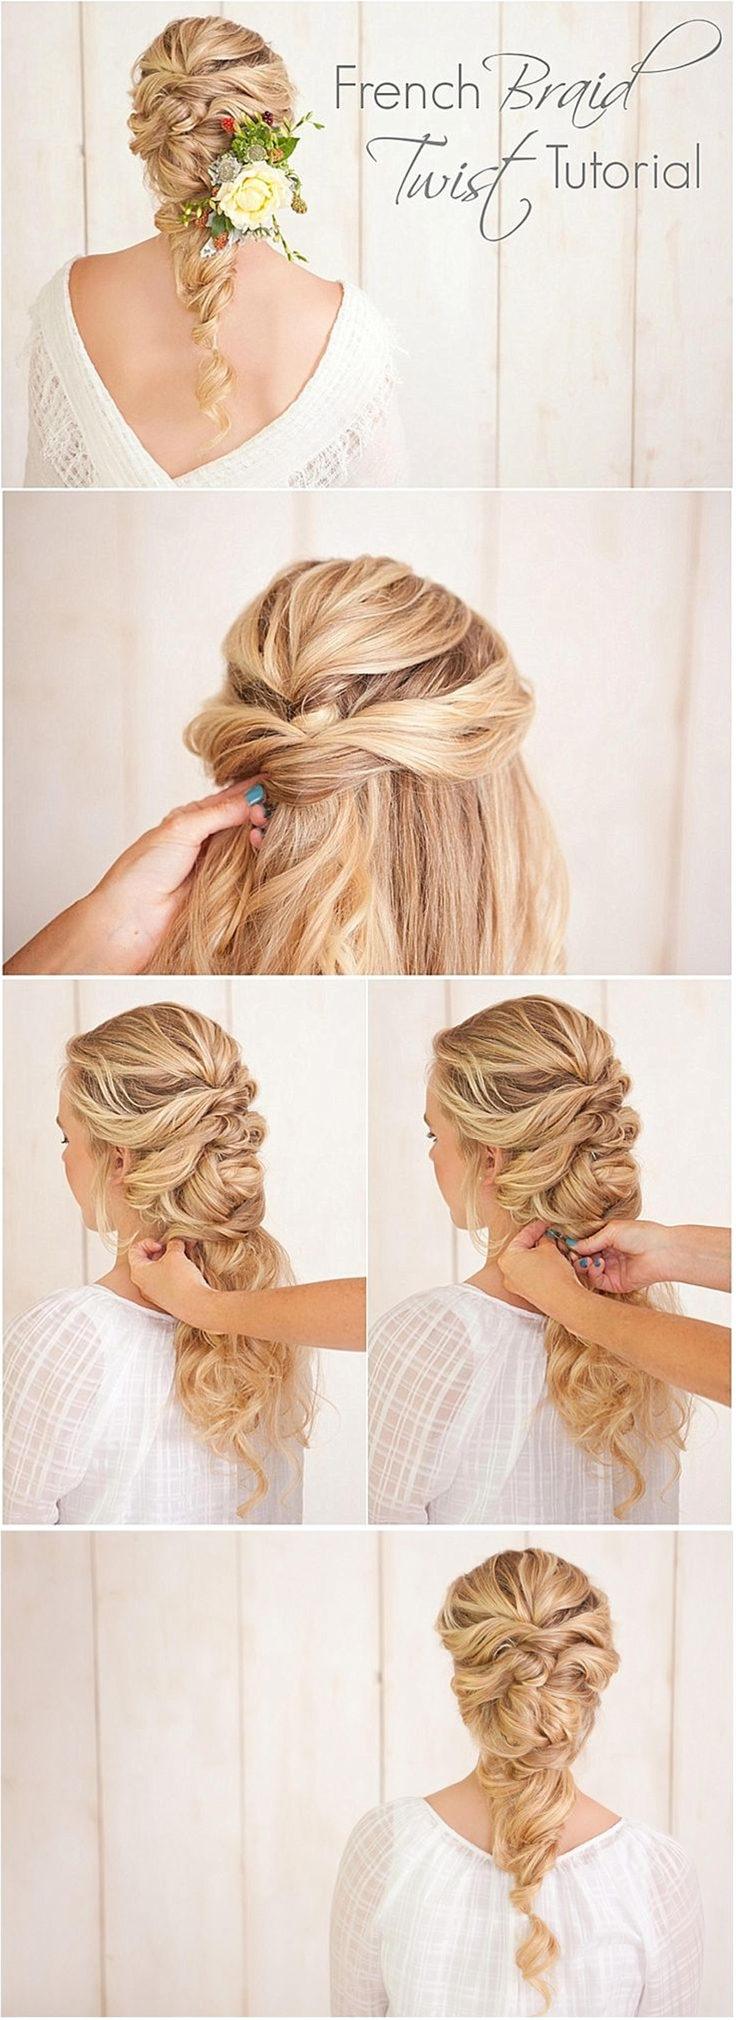 Love this wedding hairstyle idea! Click to see the full tutorial.